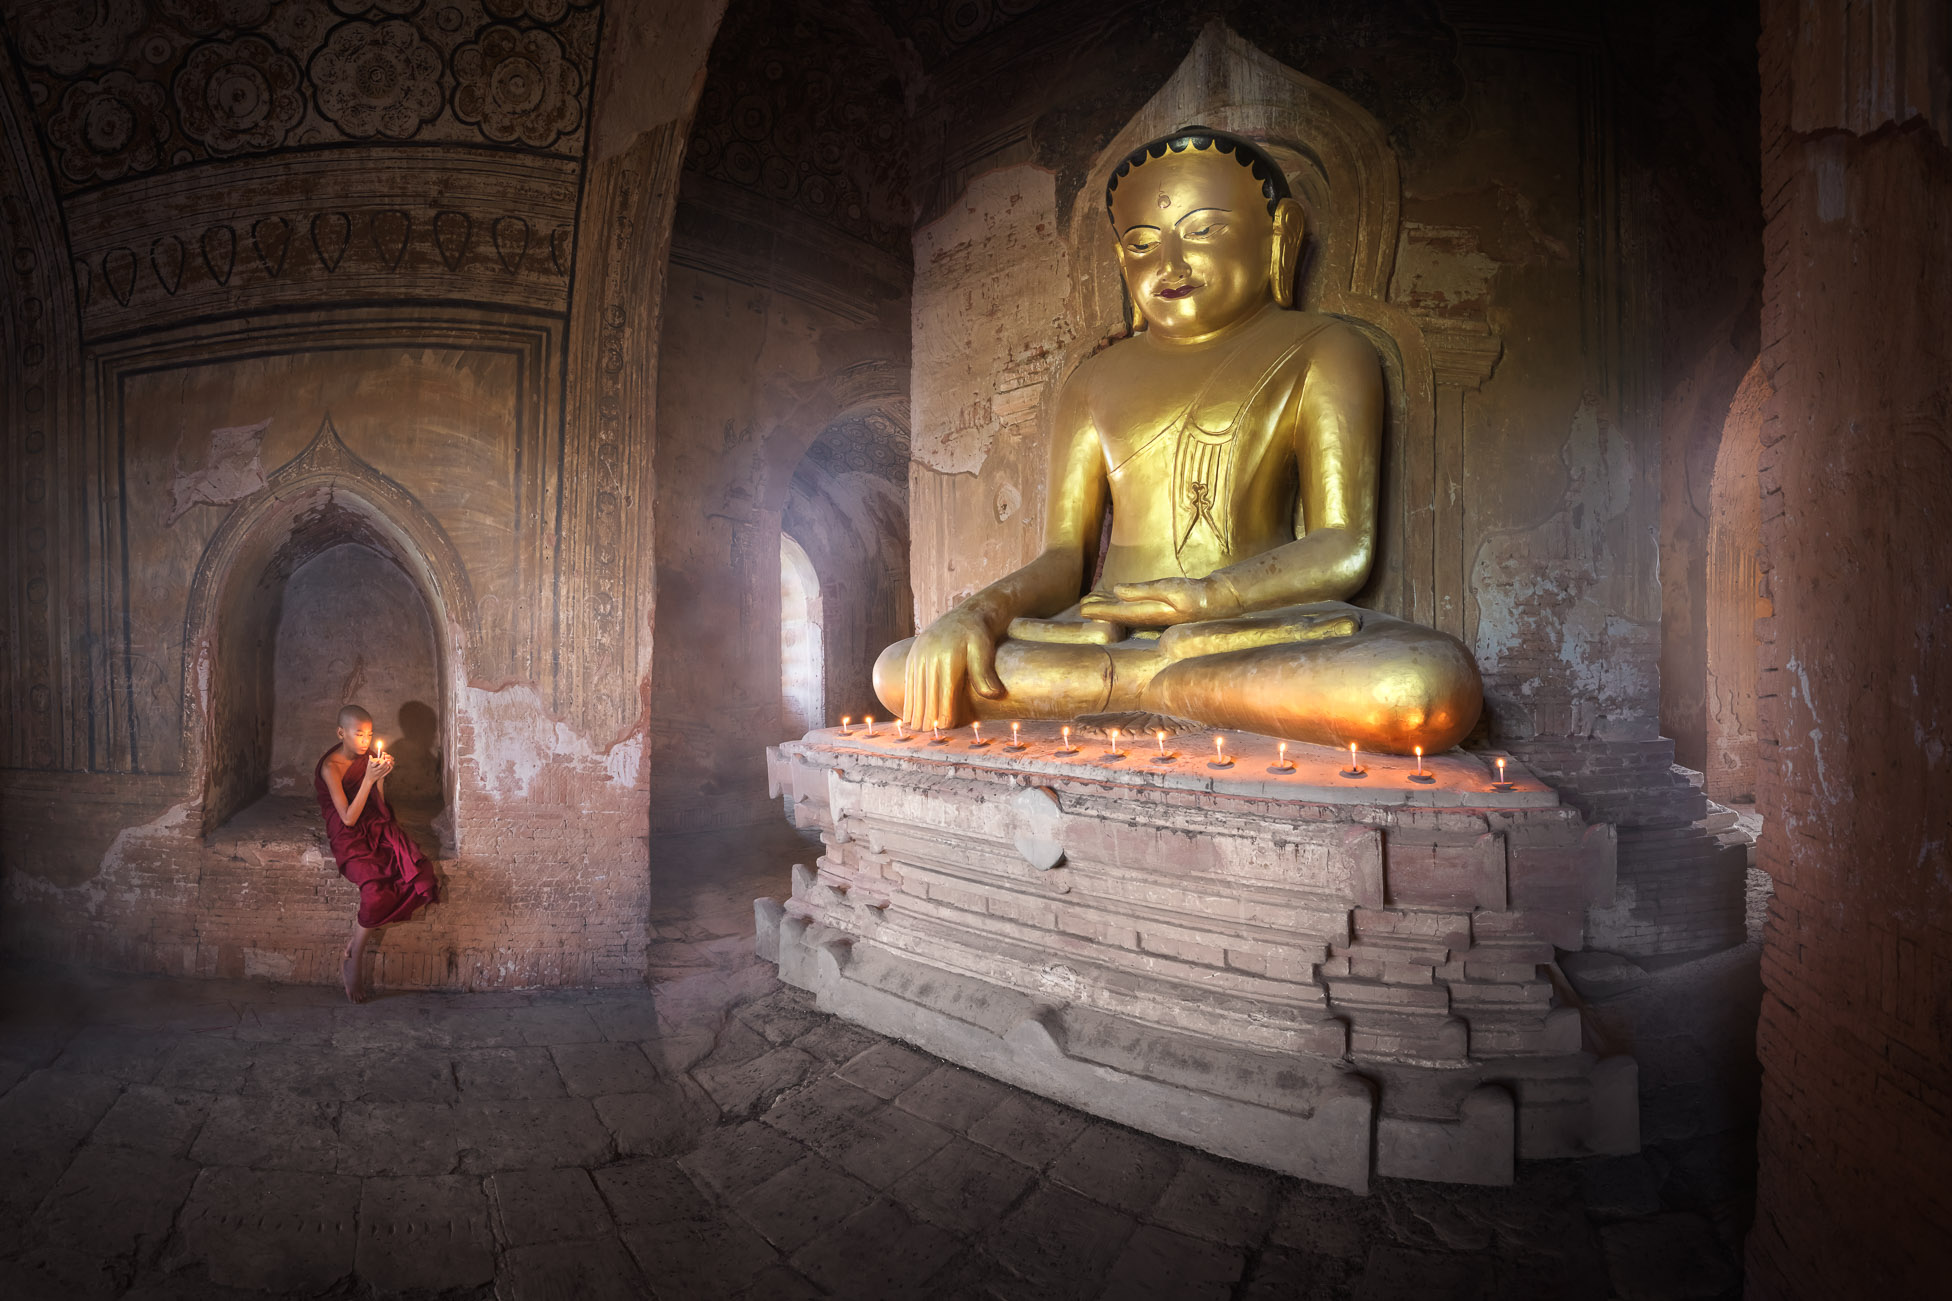 Monk Praying Inside Ancient Temple with the Seated Golden Buddha, Bagan, Myanmar